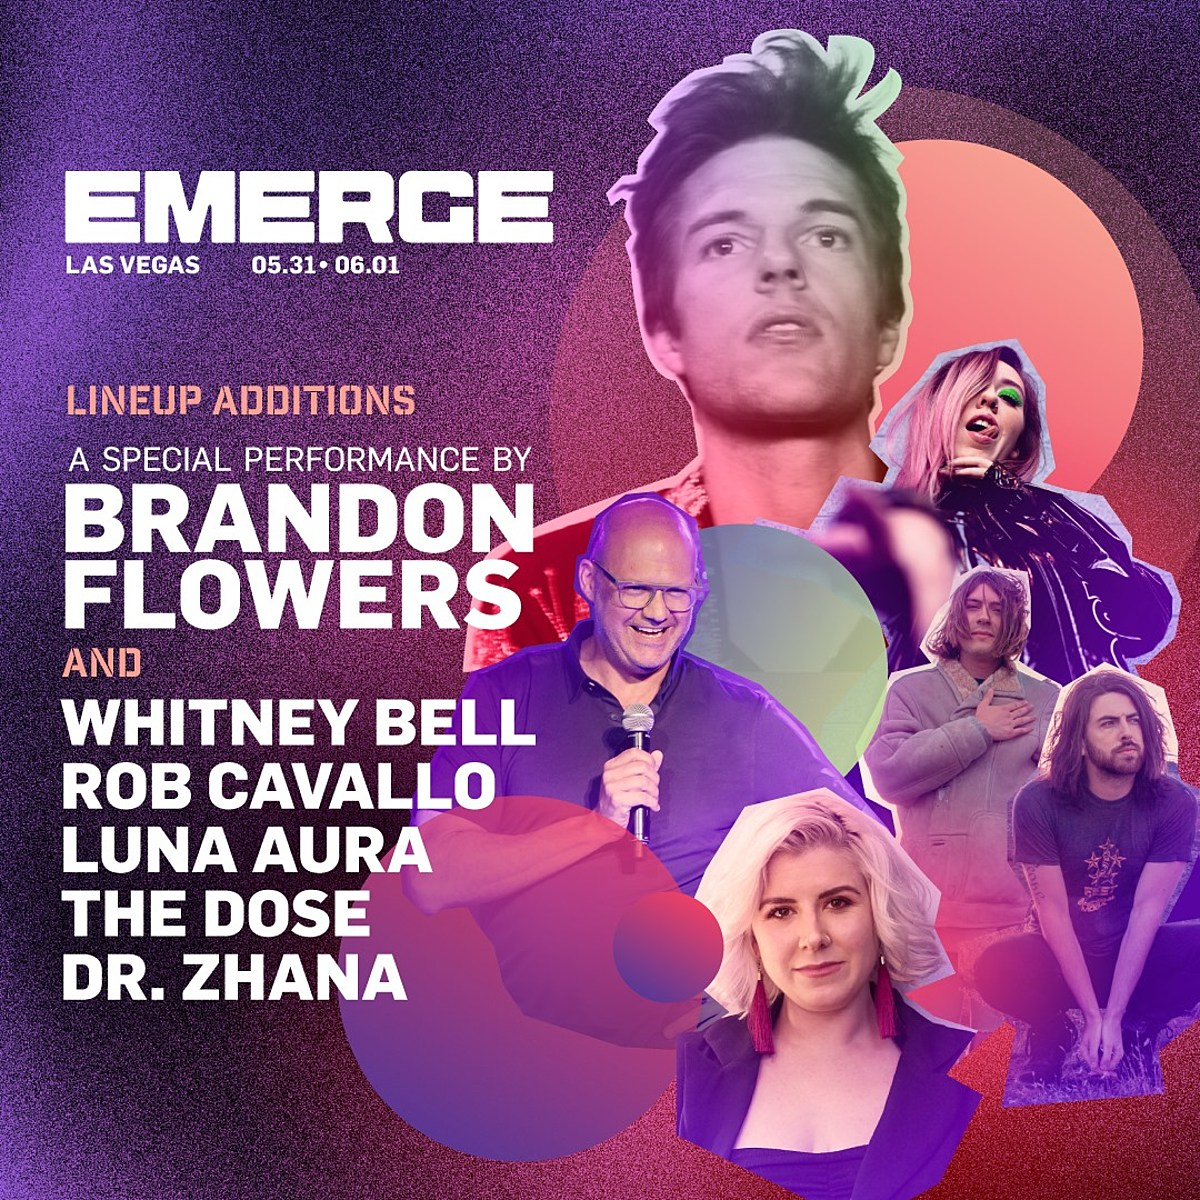 Brandon Flowers, Emma Gonzalez more added to Emerge 2019 lineup